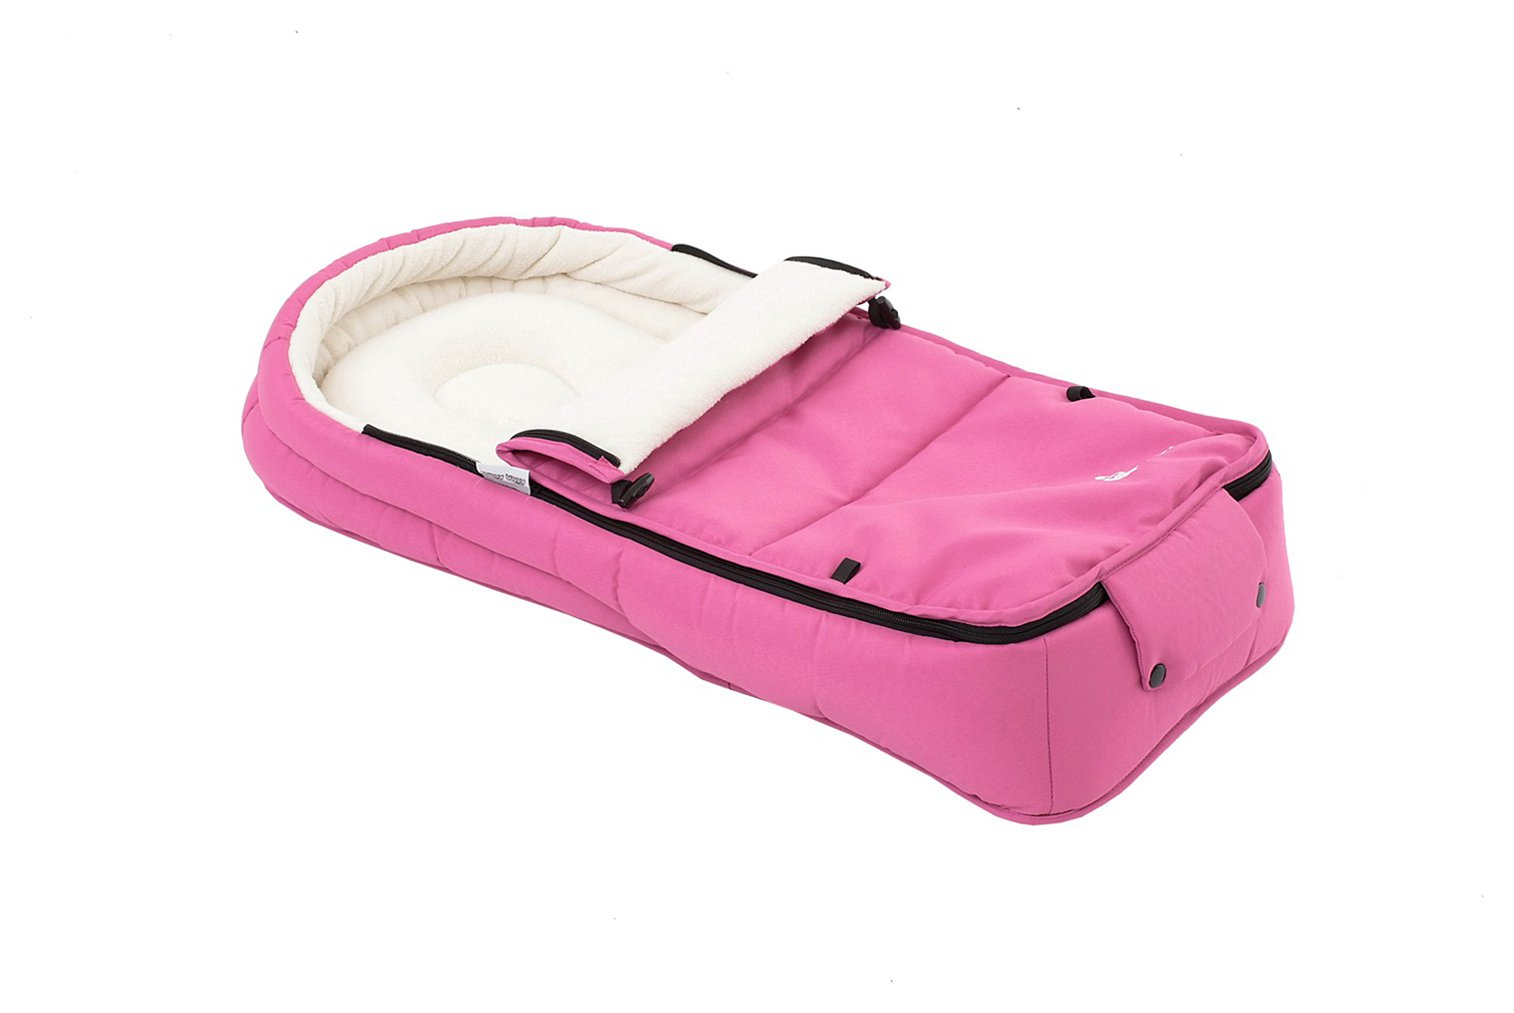 Image of Baby Elegance Snuggy Buggy - Pink.